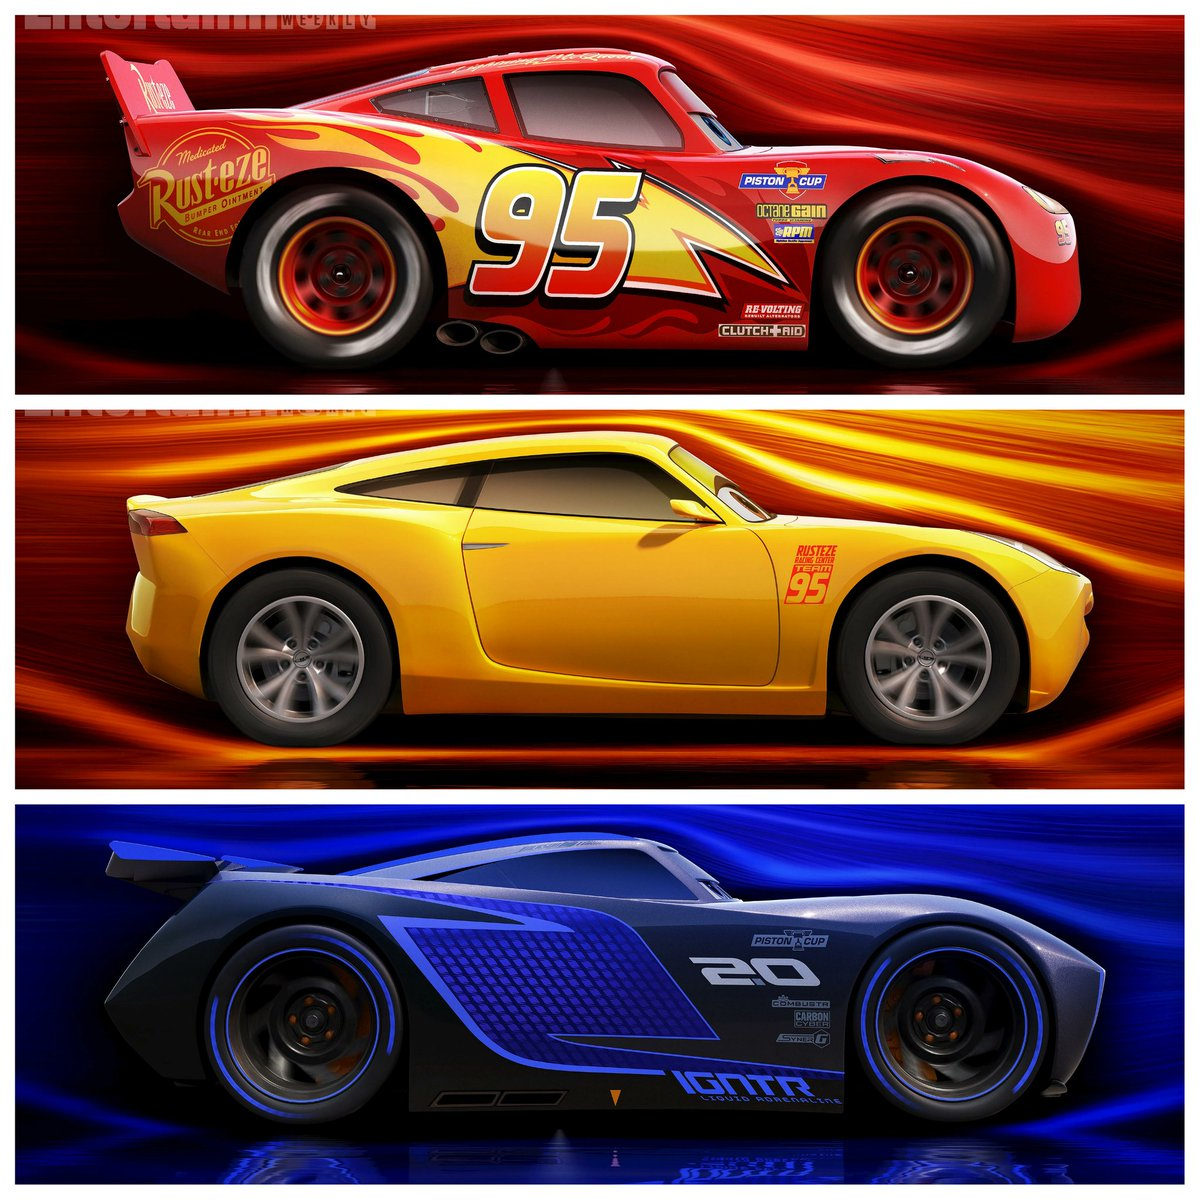 sasaki time on twitter lightning mcqueen cruz ramirez. Black Bedroom Furniture Sets. Home Design Ideas